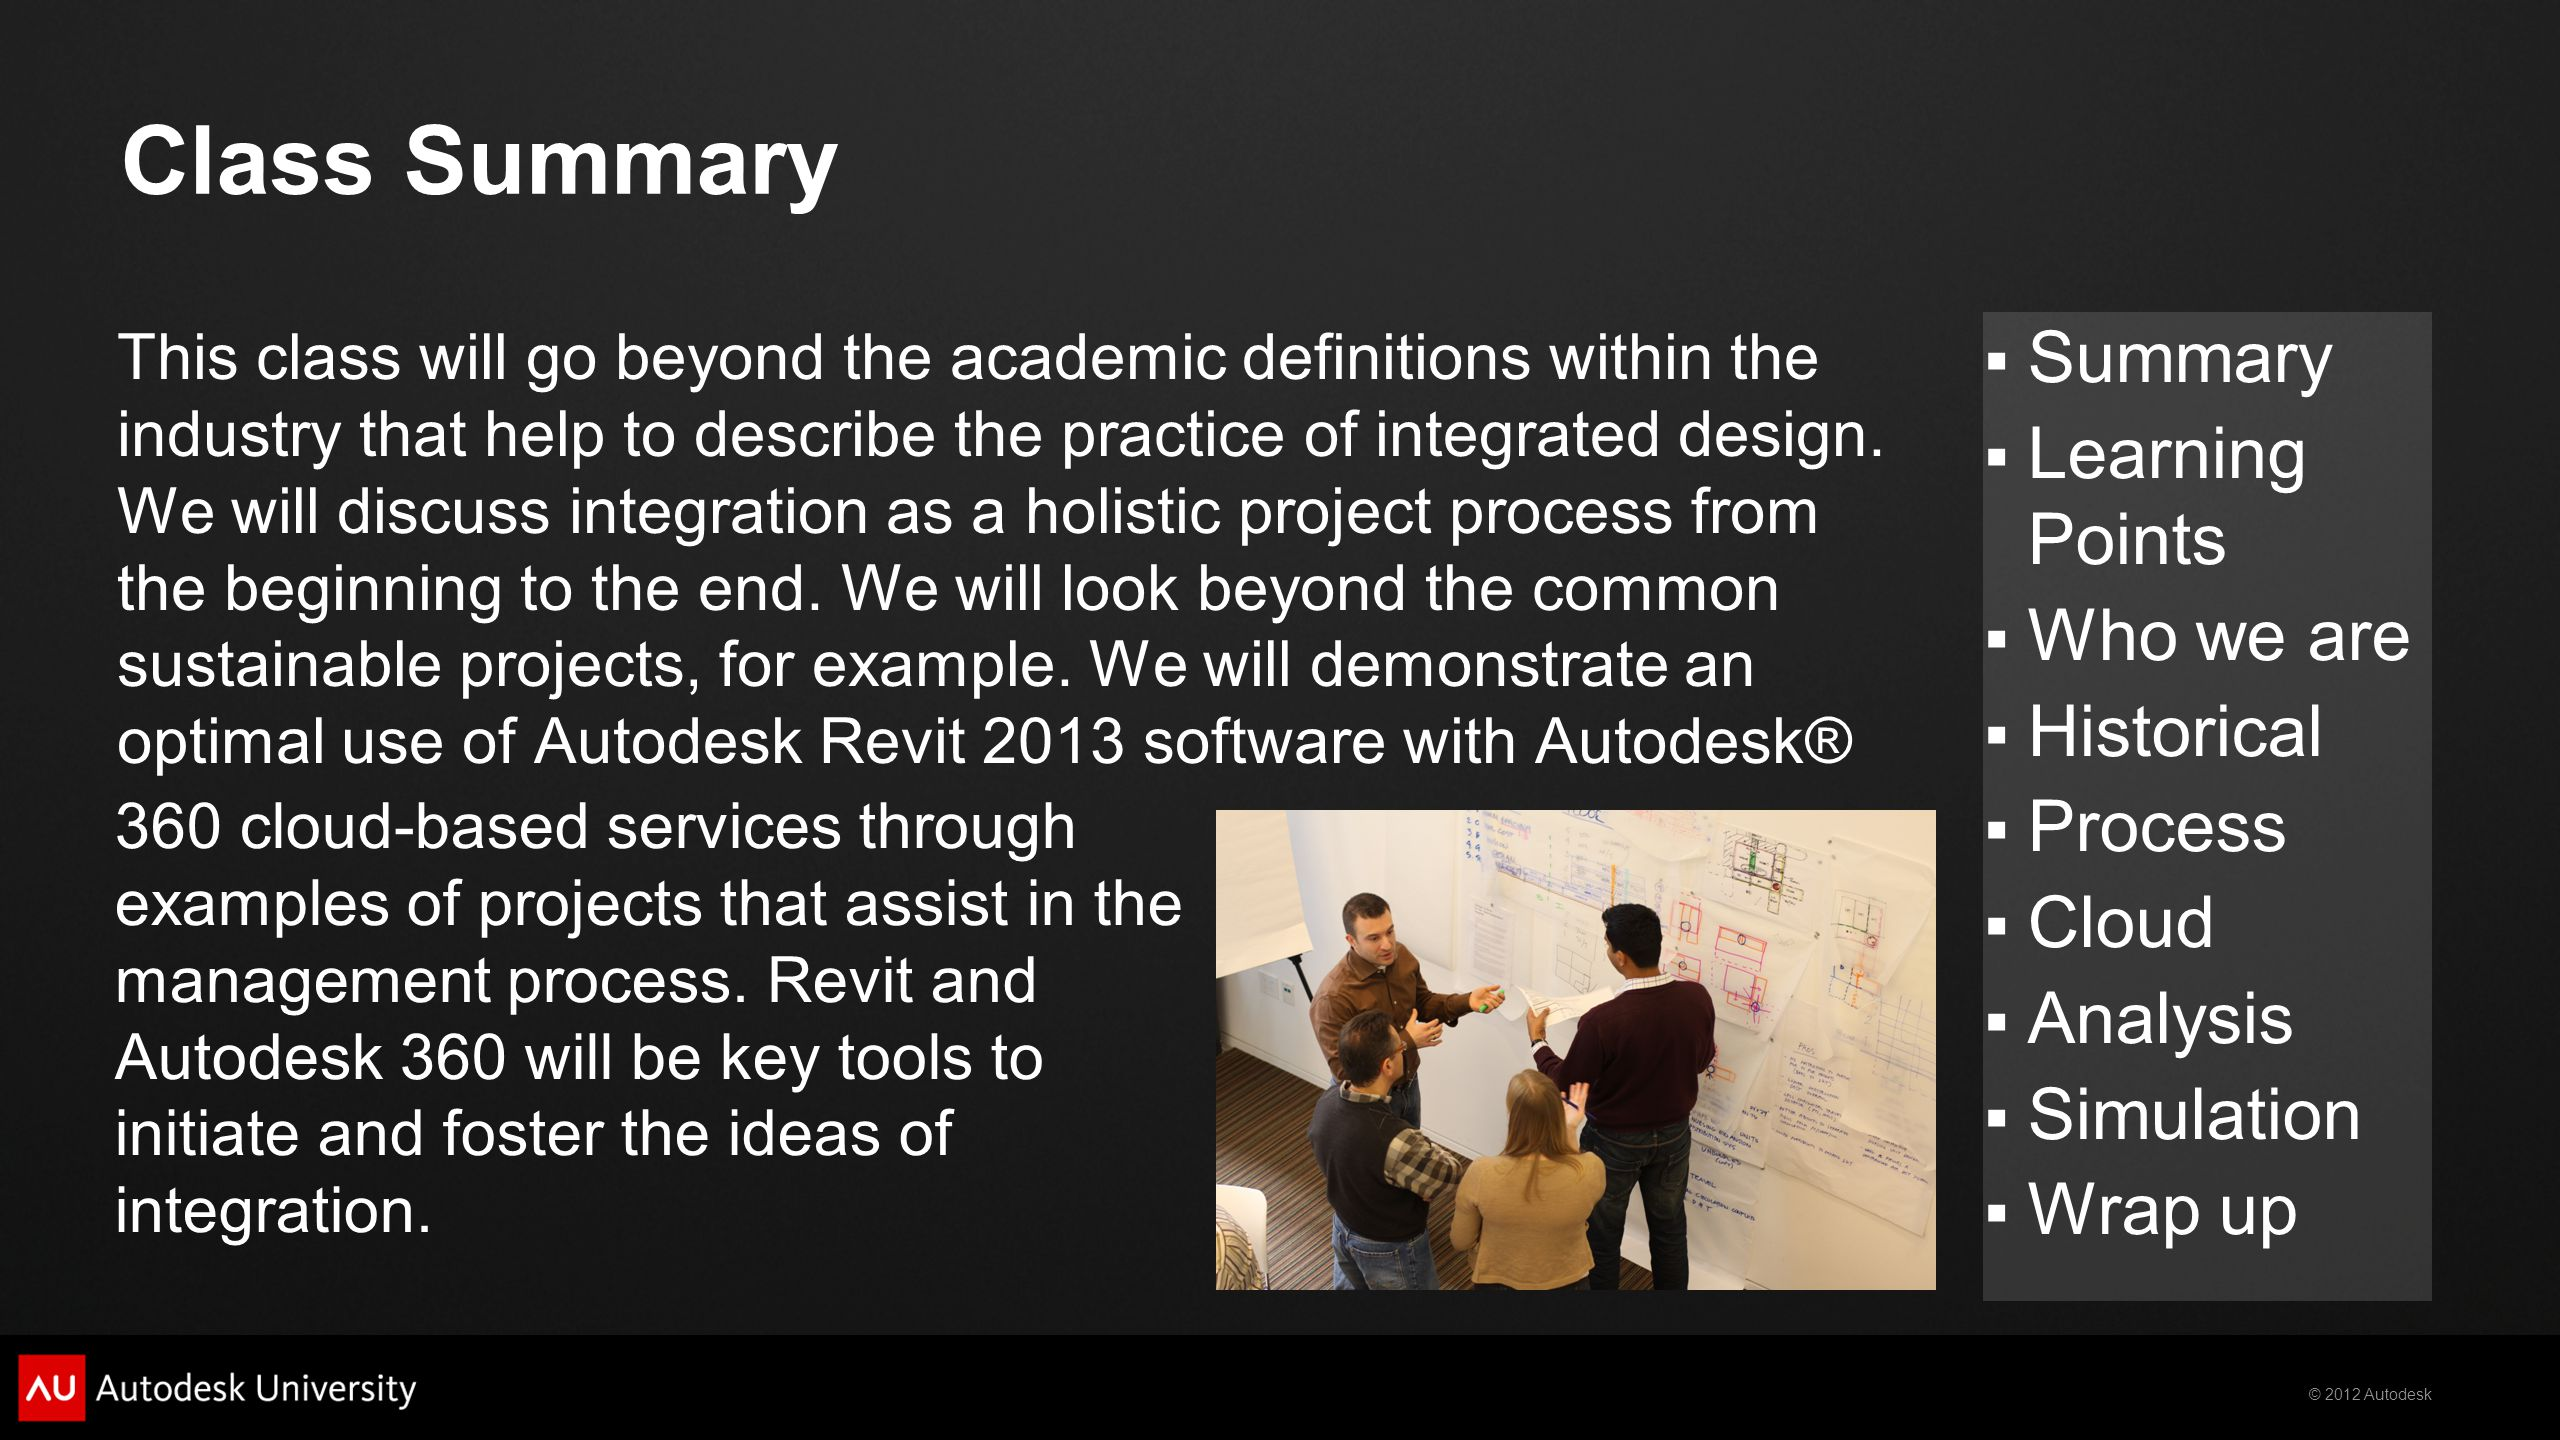 © 2012 Autodesk  Summary  Learning Points  Who we are  Historical  Process  Cloud  Analysis  Simulation  Wrap up Class Summary This class wil